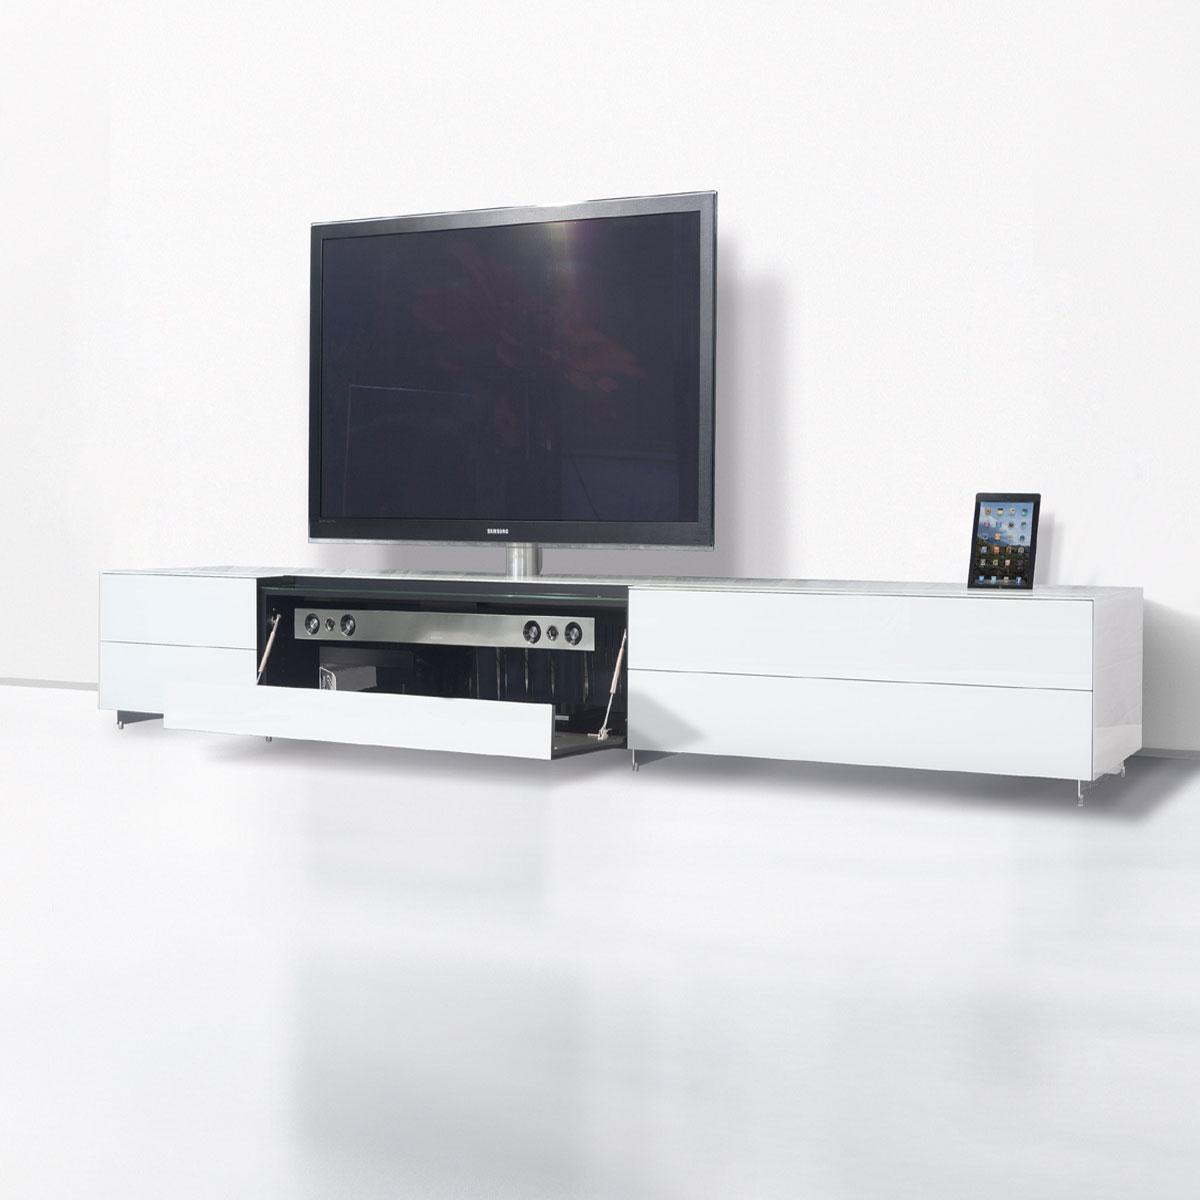 spectral hifi tv mobel mit docking funktion fur apple gerate